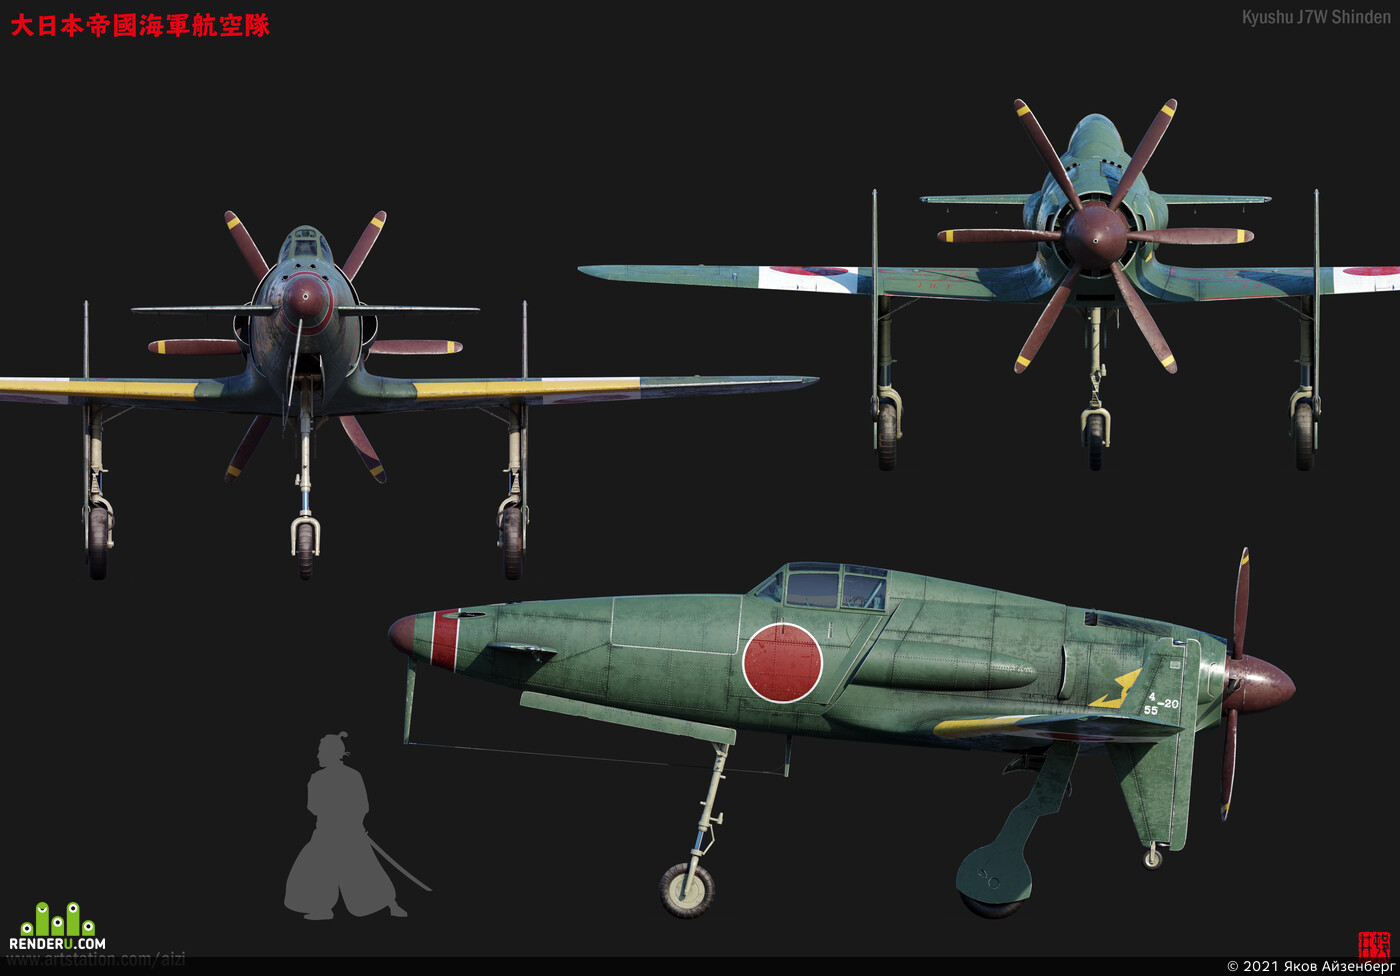 warplane, airwar, plane, fighter, Japan, WWII vehicles, World War II